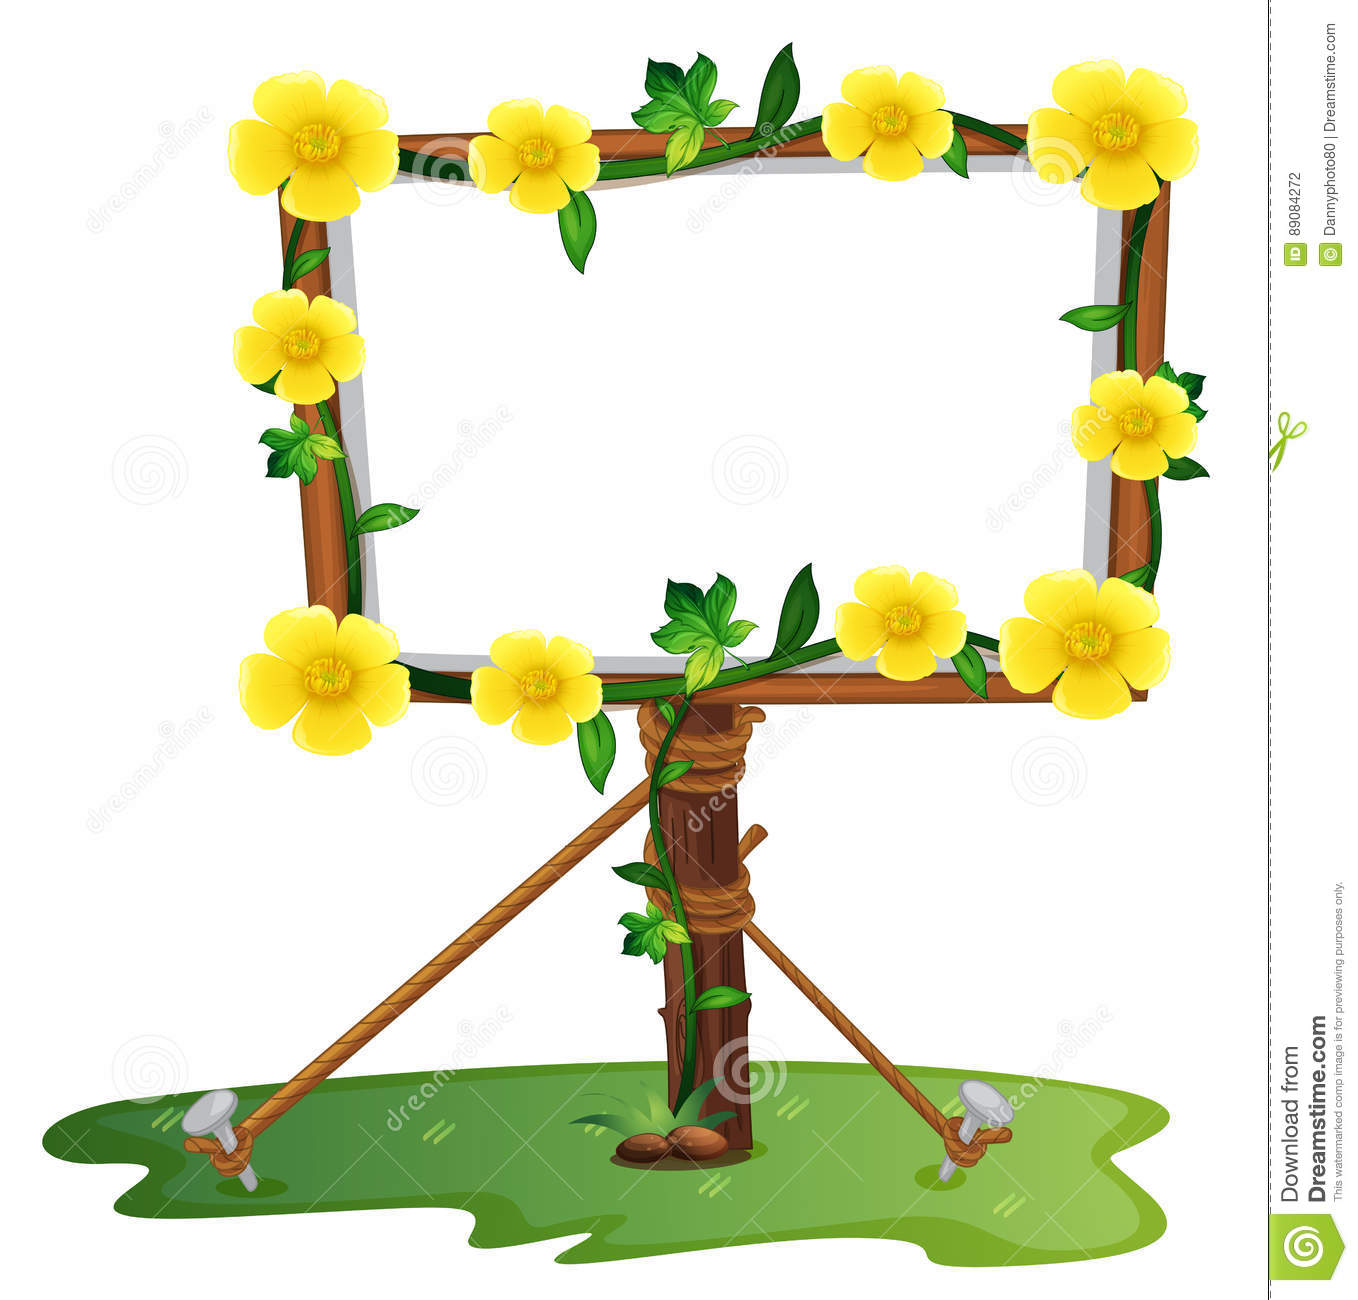 6bfd8ba74142c Royalty-Free Vector. Frame template with yellow buttercup flowers